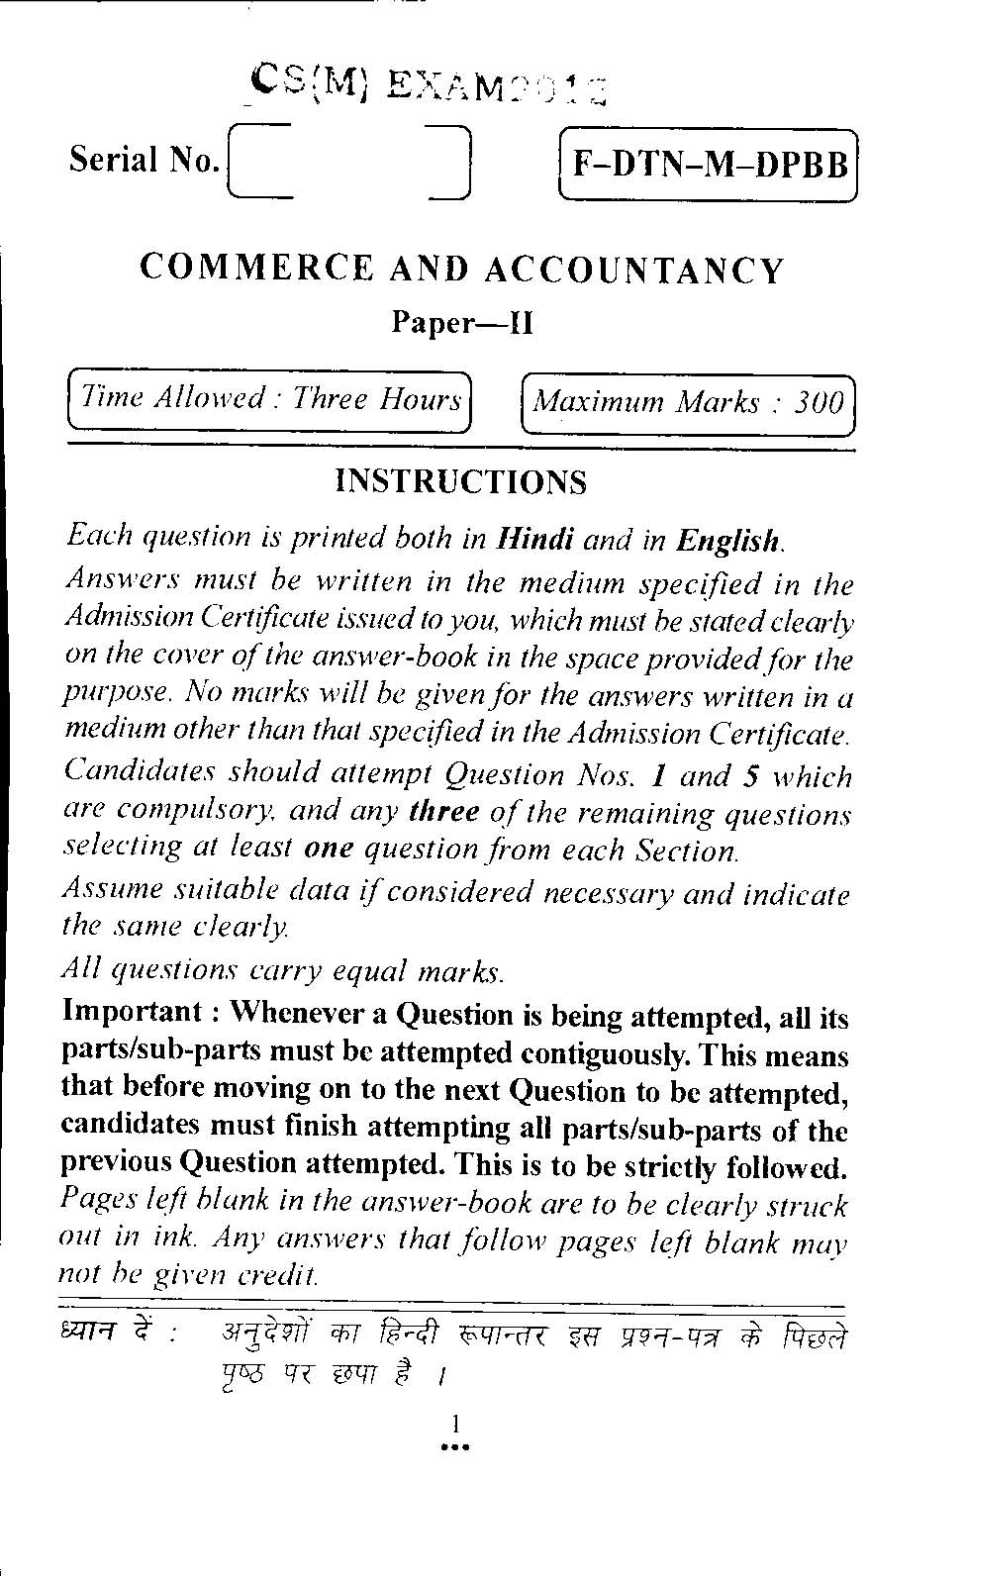 011 Civil Services Examination Commerce And Accountancy Paper Ii Previous Years Que Essay Example Marvelous Racism Argumentative Topics Persuasive In Canada Full